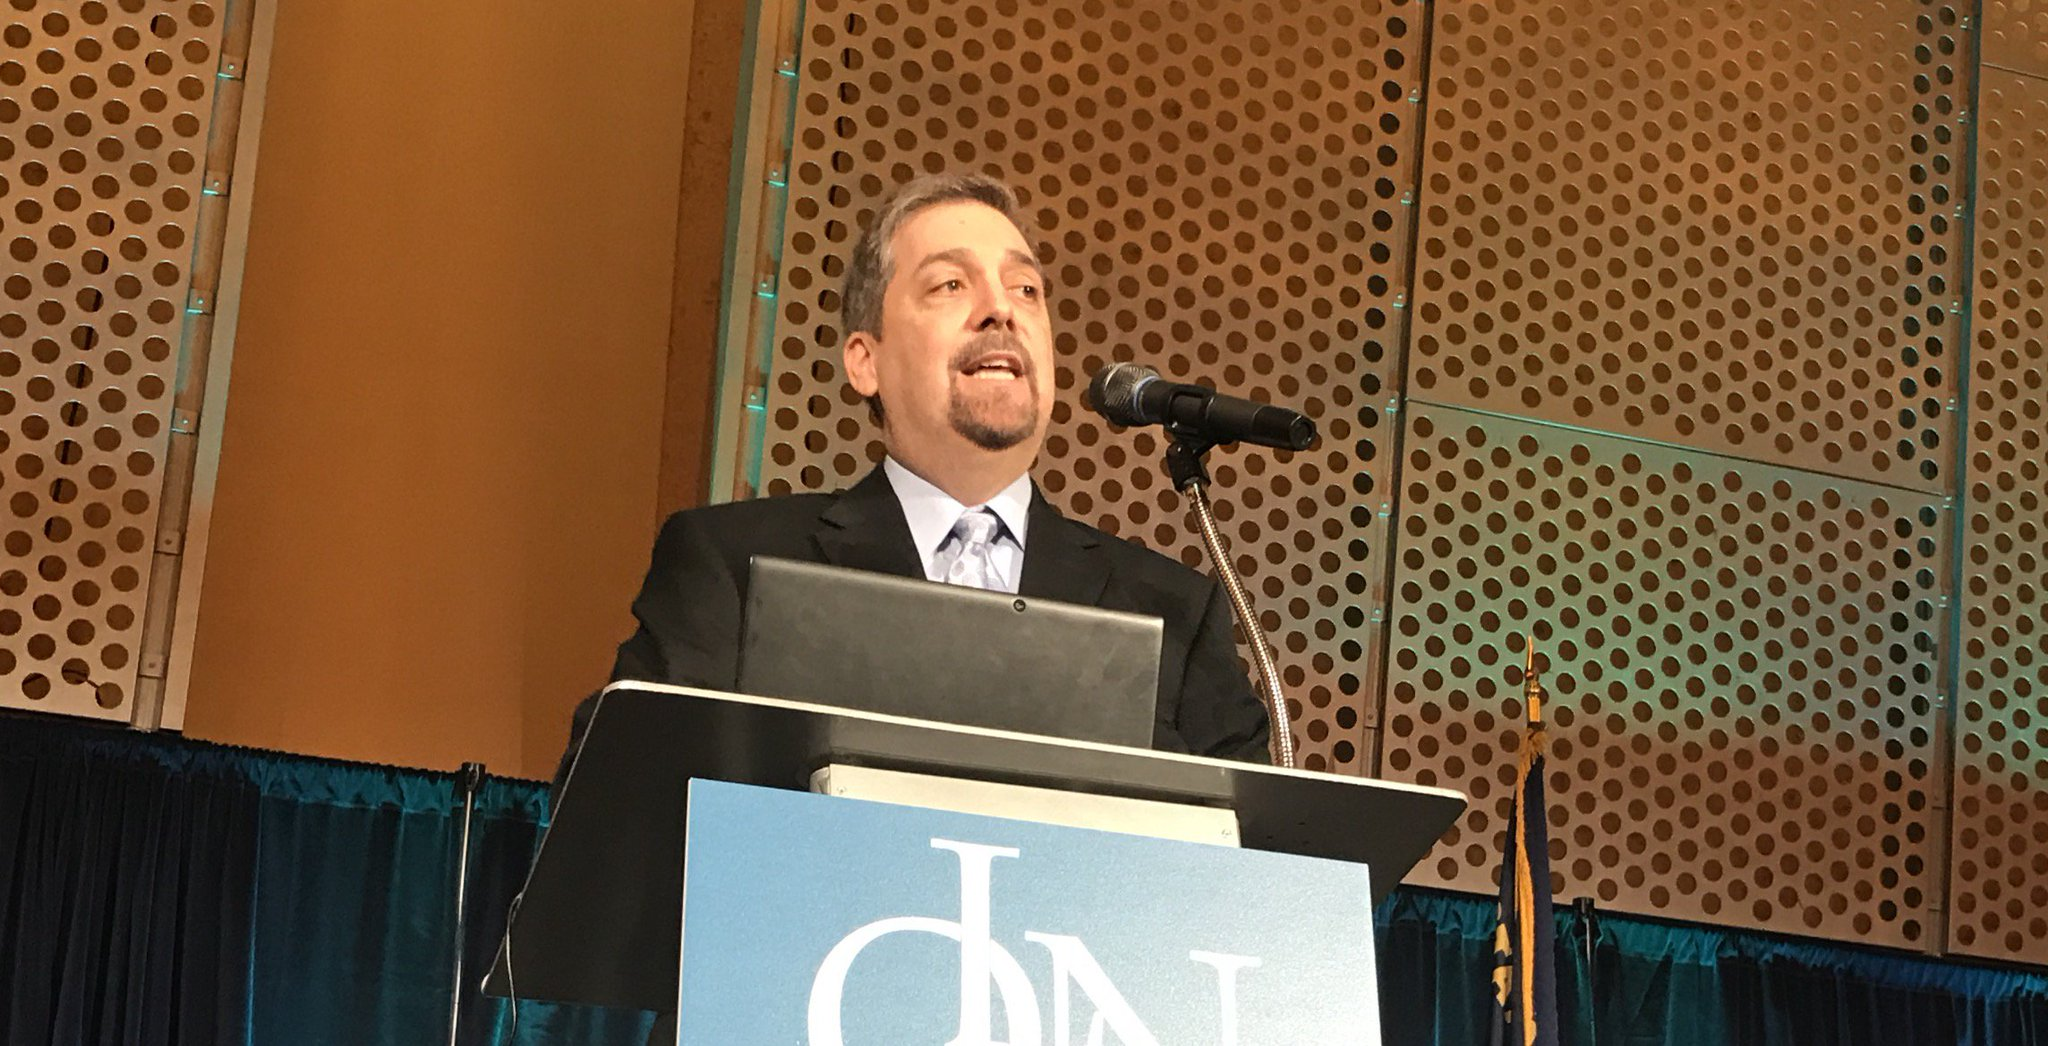 Use #edevidence mixed with practitioner expertise & matched with community need to address #edequity. Charles Martinez #OLN17 @OLNOregon https://t.co/OeQZ2eLDXn